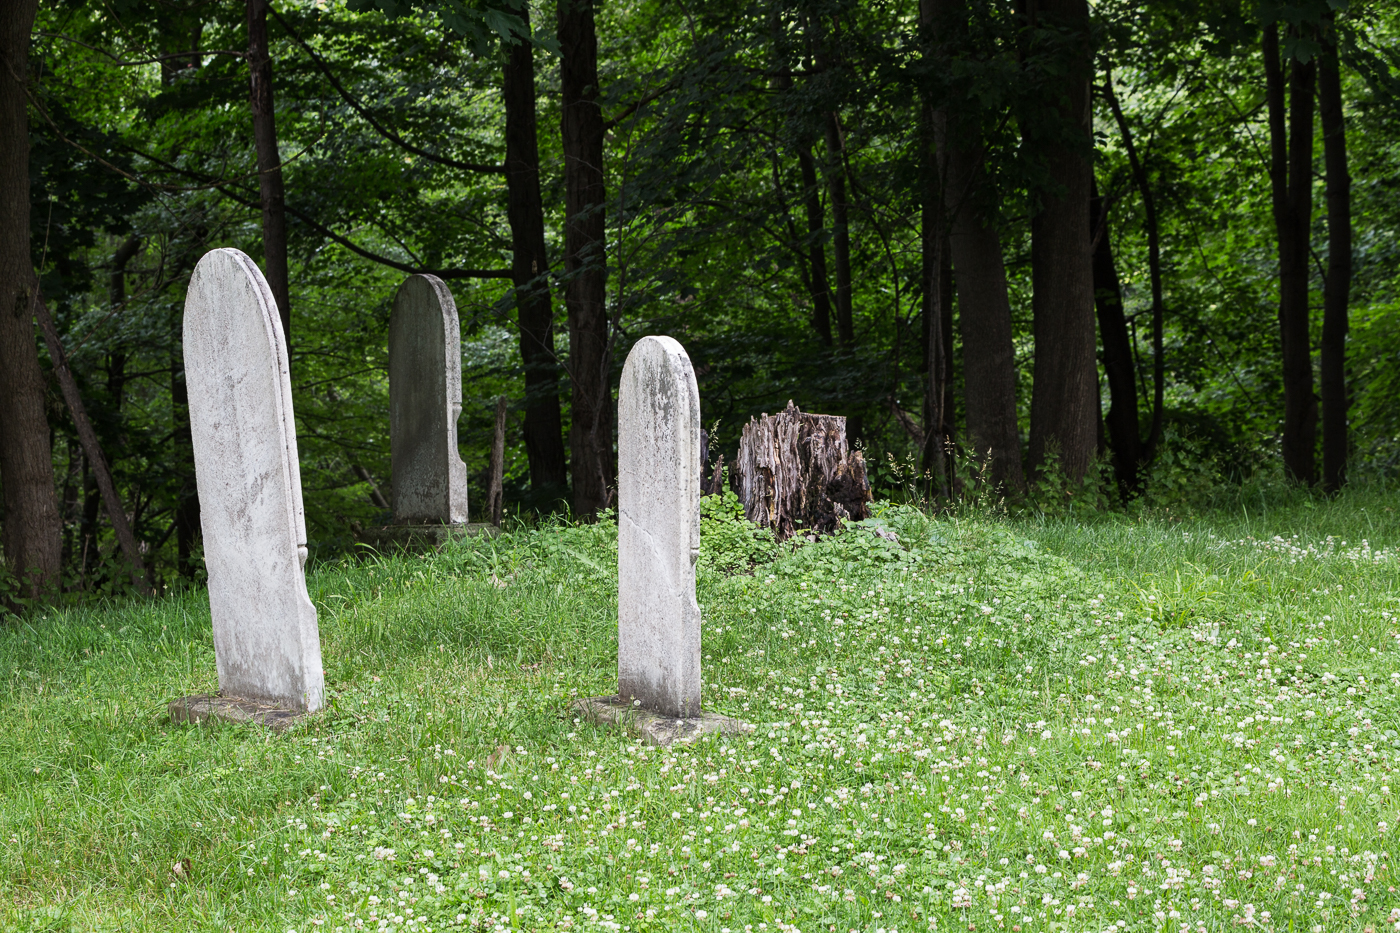 Old tombstones at the edge of the ravine